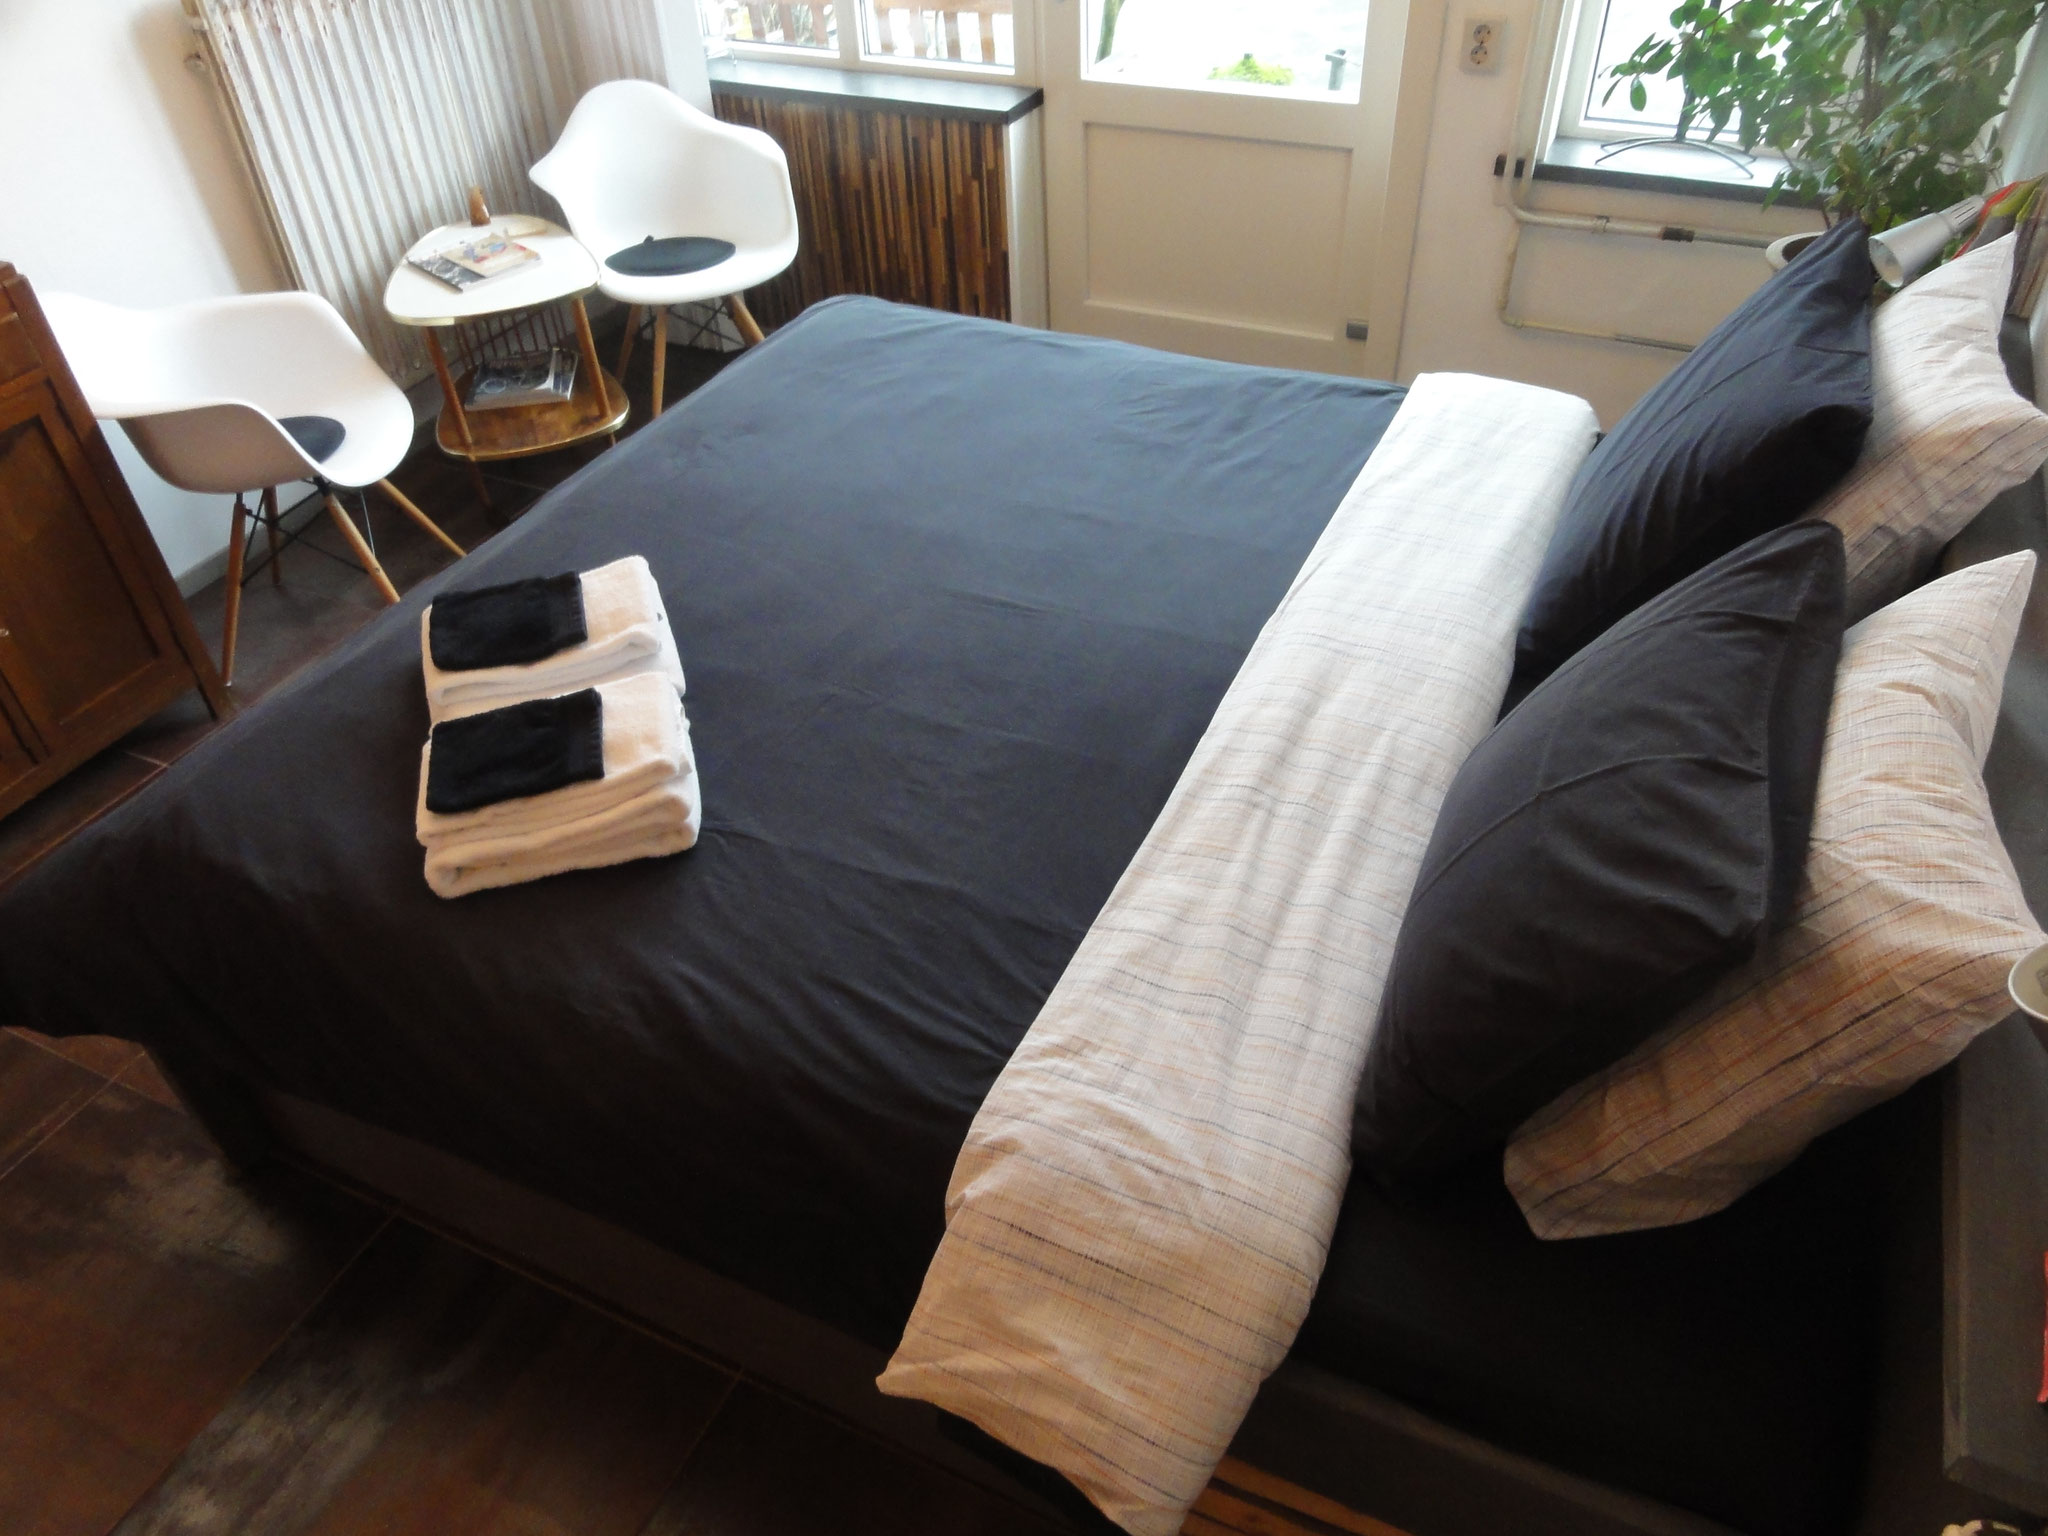 Bed en Breakfast Amsterdam West - Kamer 1